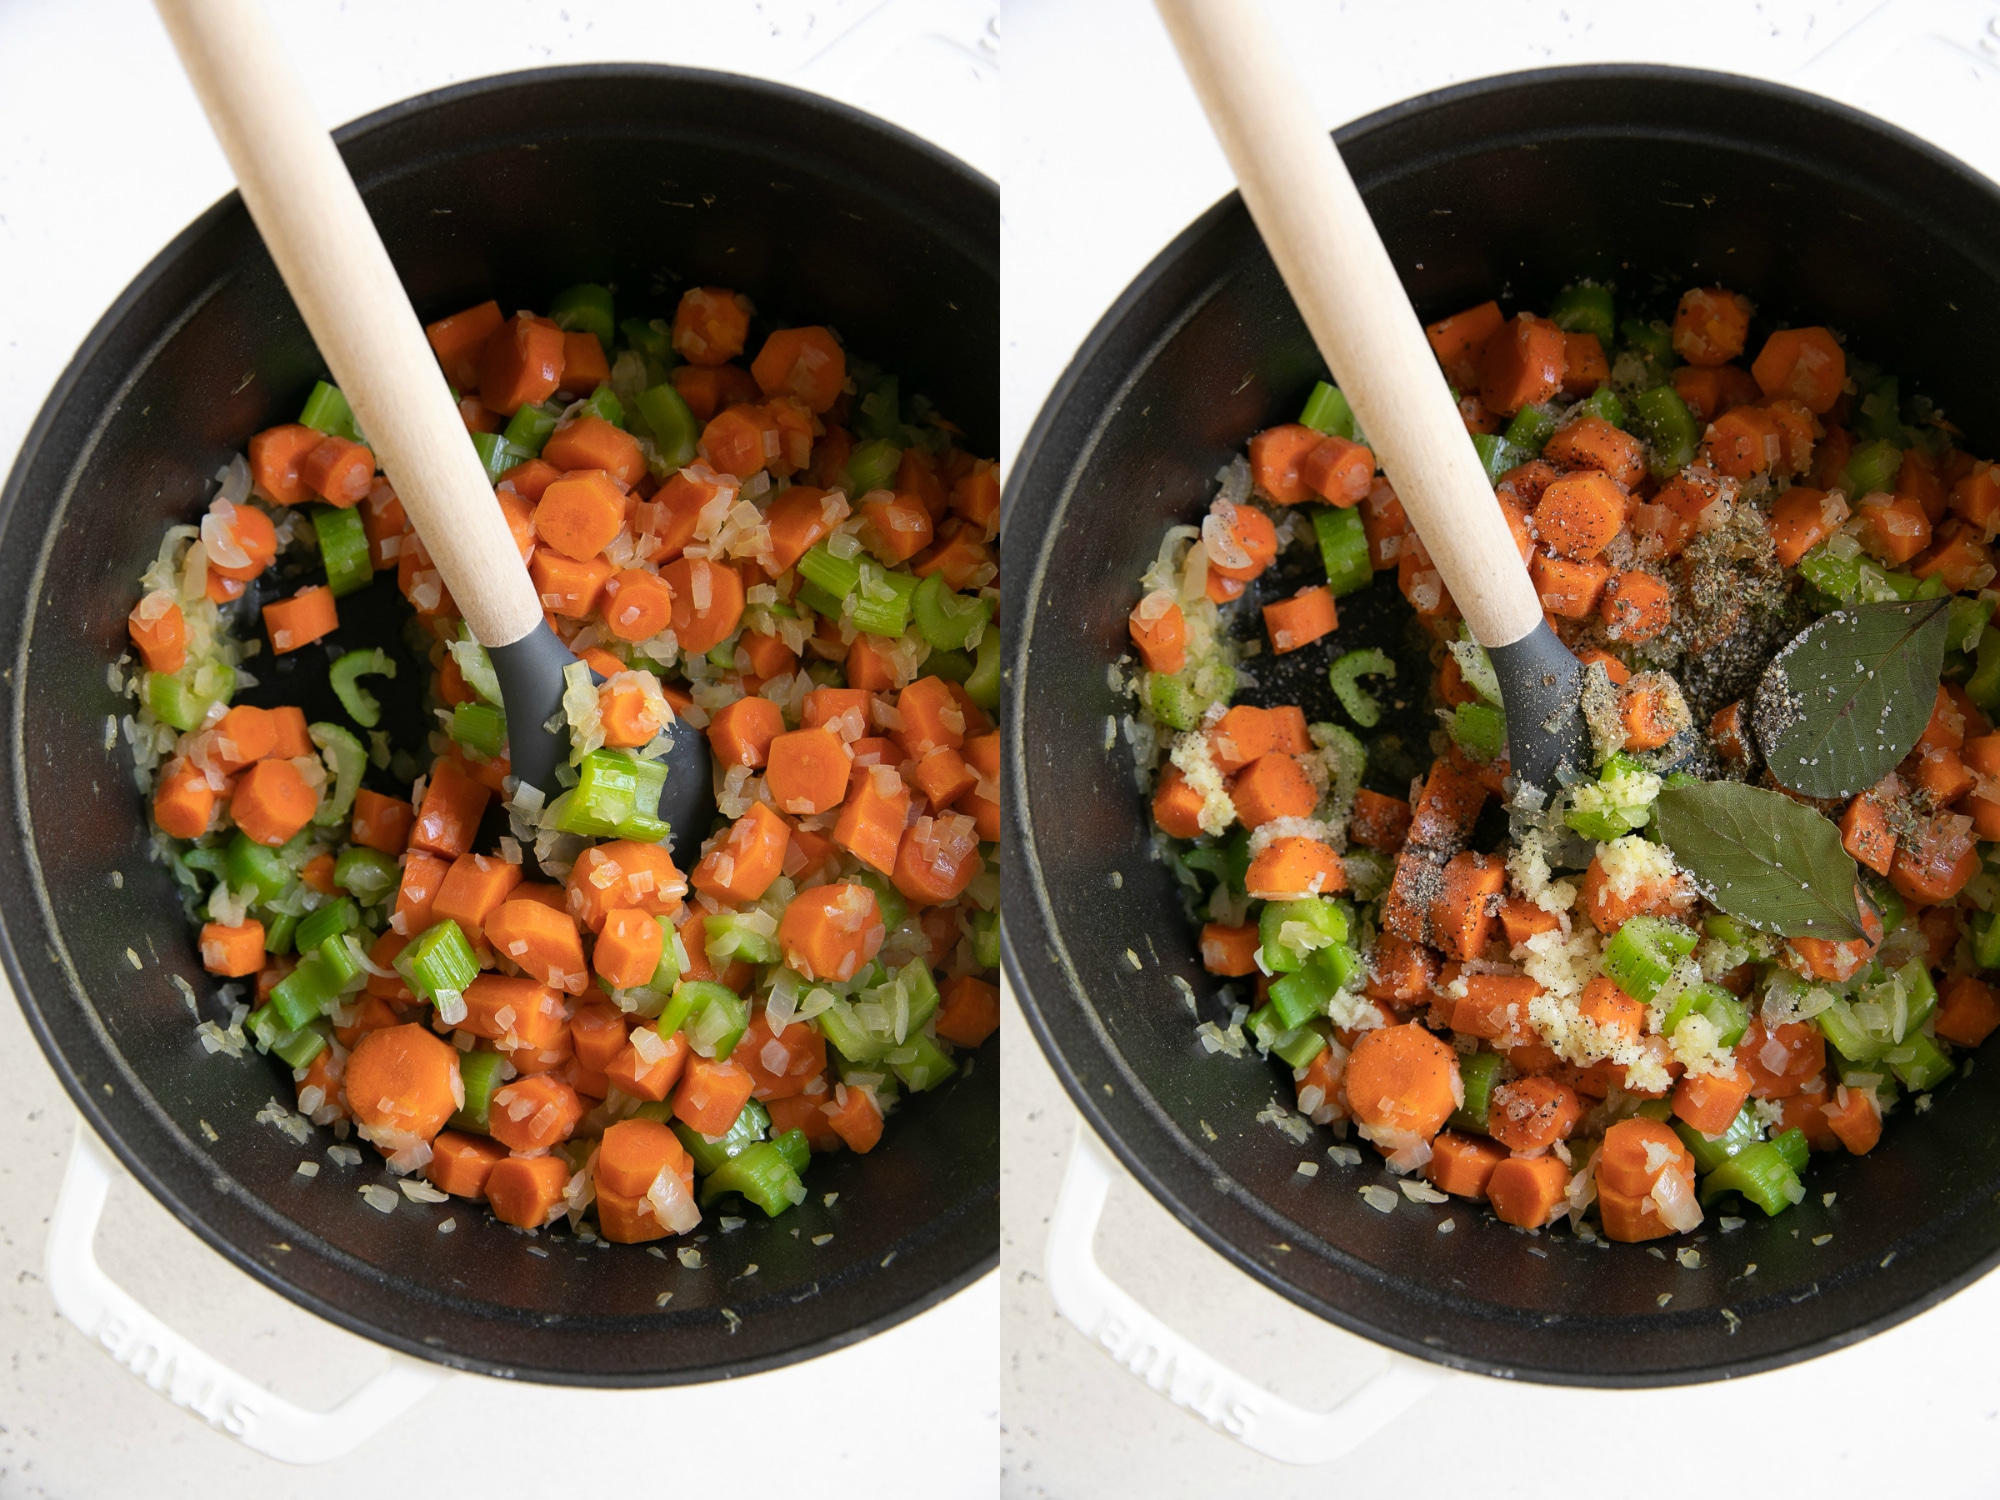 Two collaged vertical images showing a large pot with cooking carrots, celery, garlic, salt, pepper, and two bay leaves.